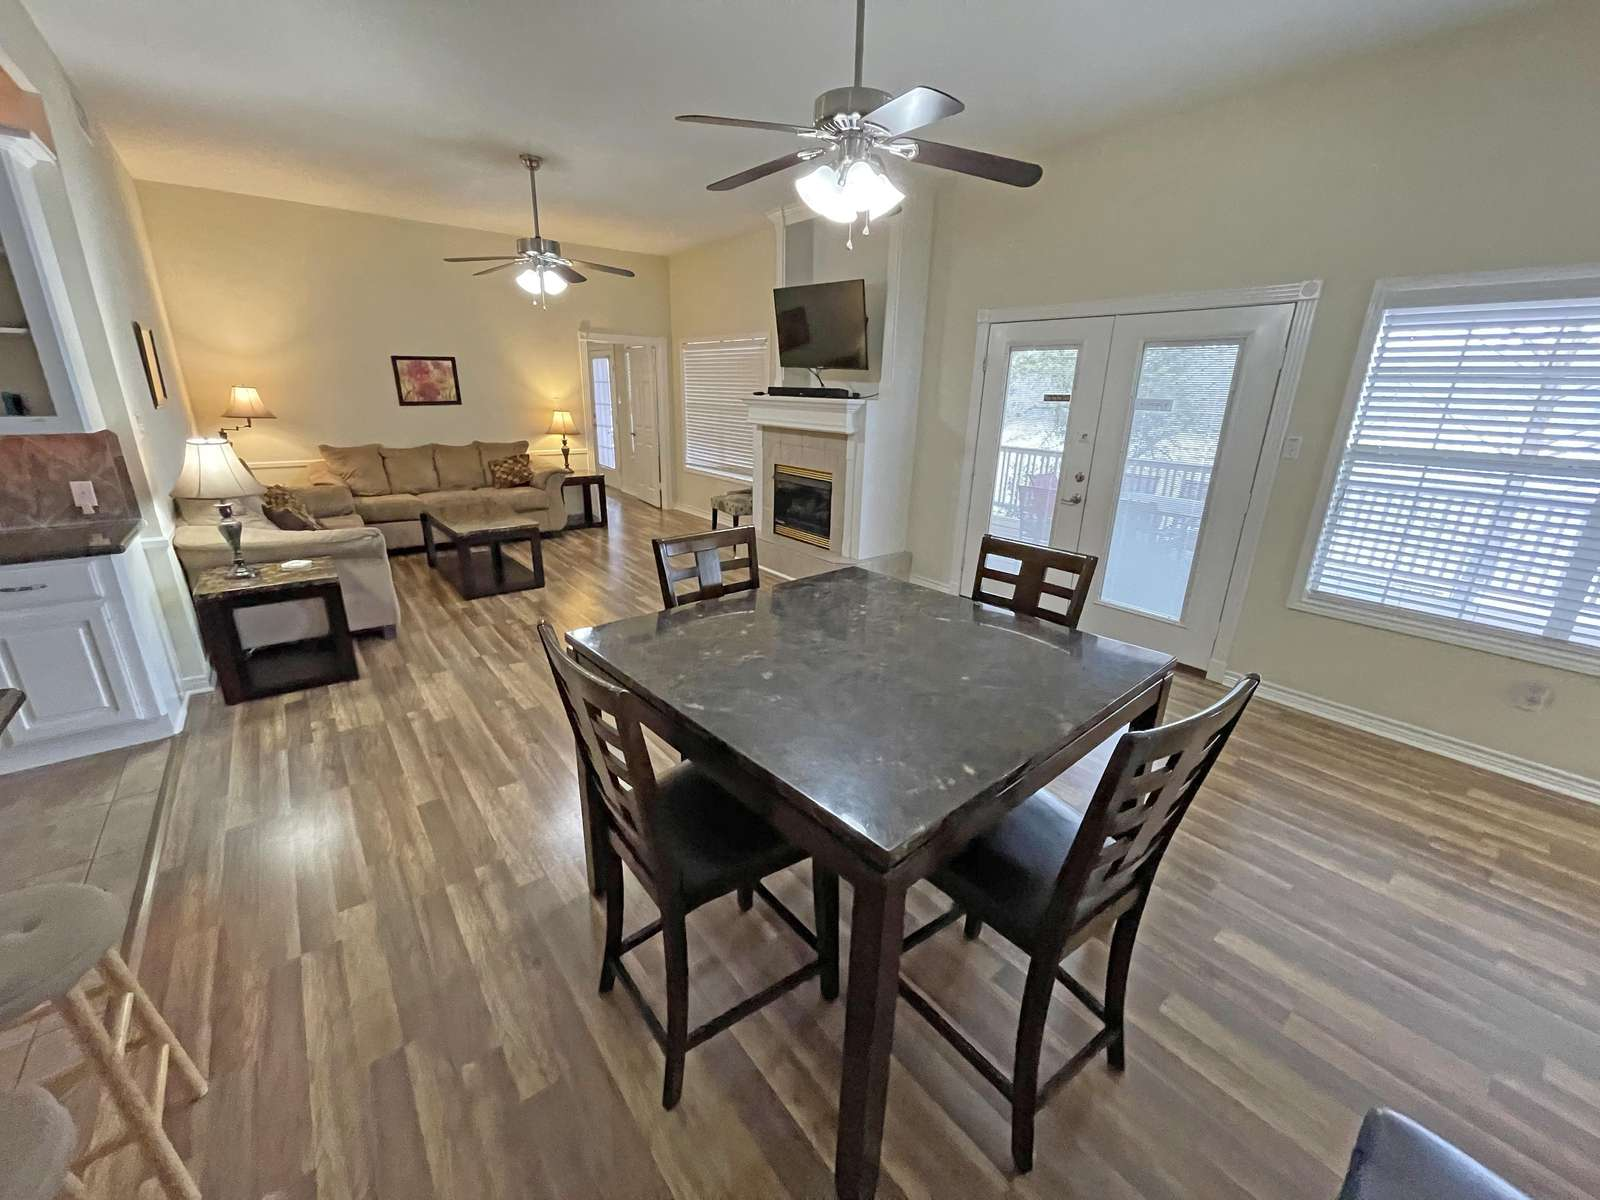 The roomy living area with adjacent game/meal table.